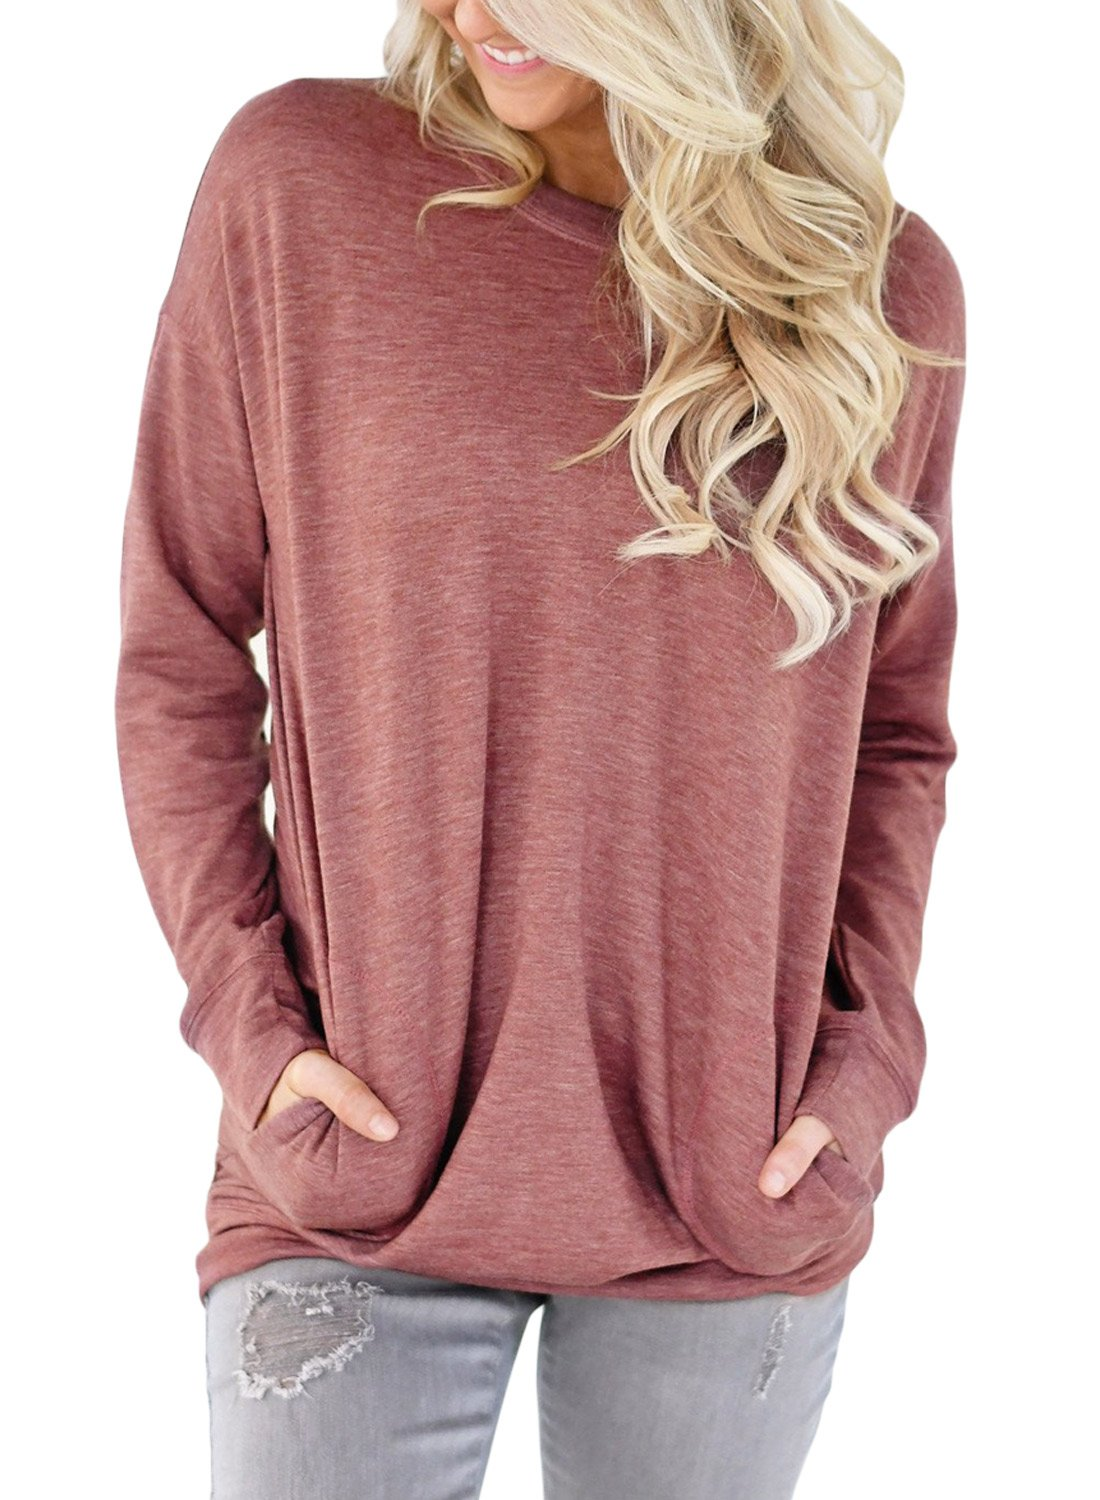 DOKOTOO Womens Long Sleeve Crew Neck Sweatshirt Solid Color Pullover Tunic Tops with Pockets ZSY250419